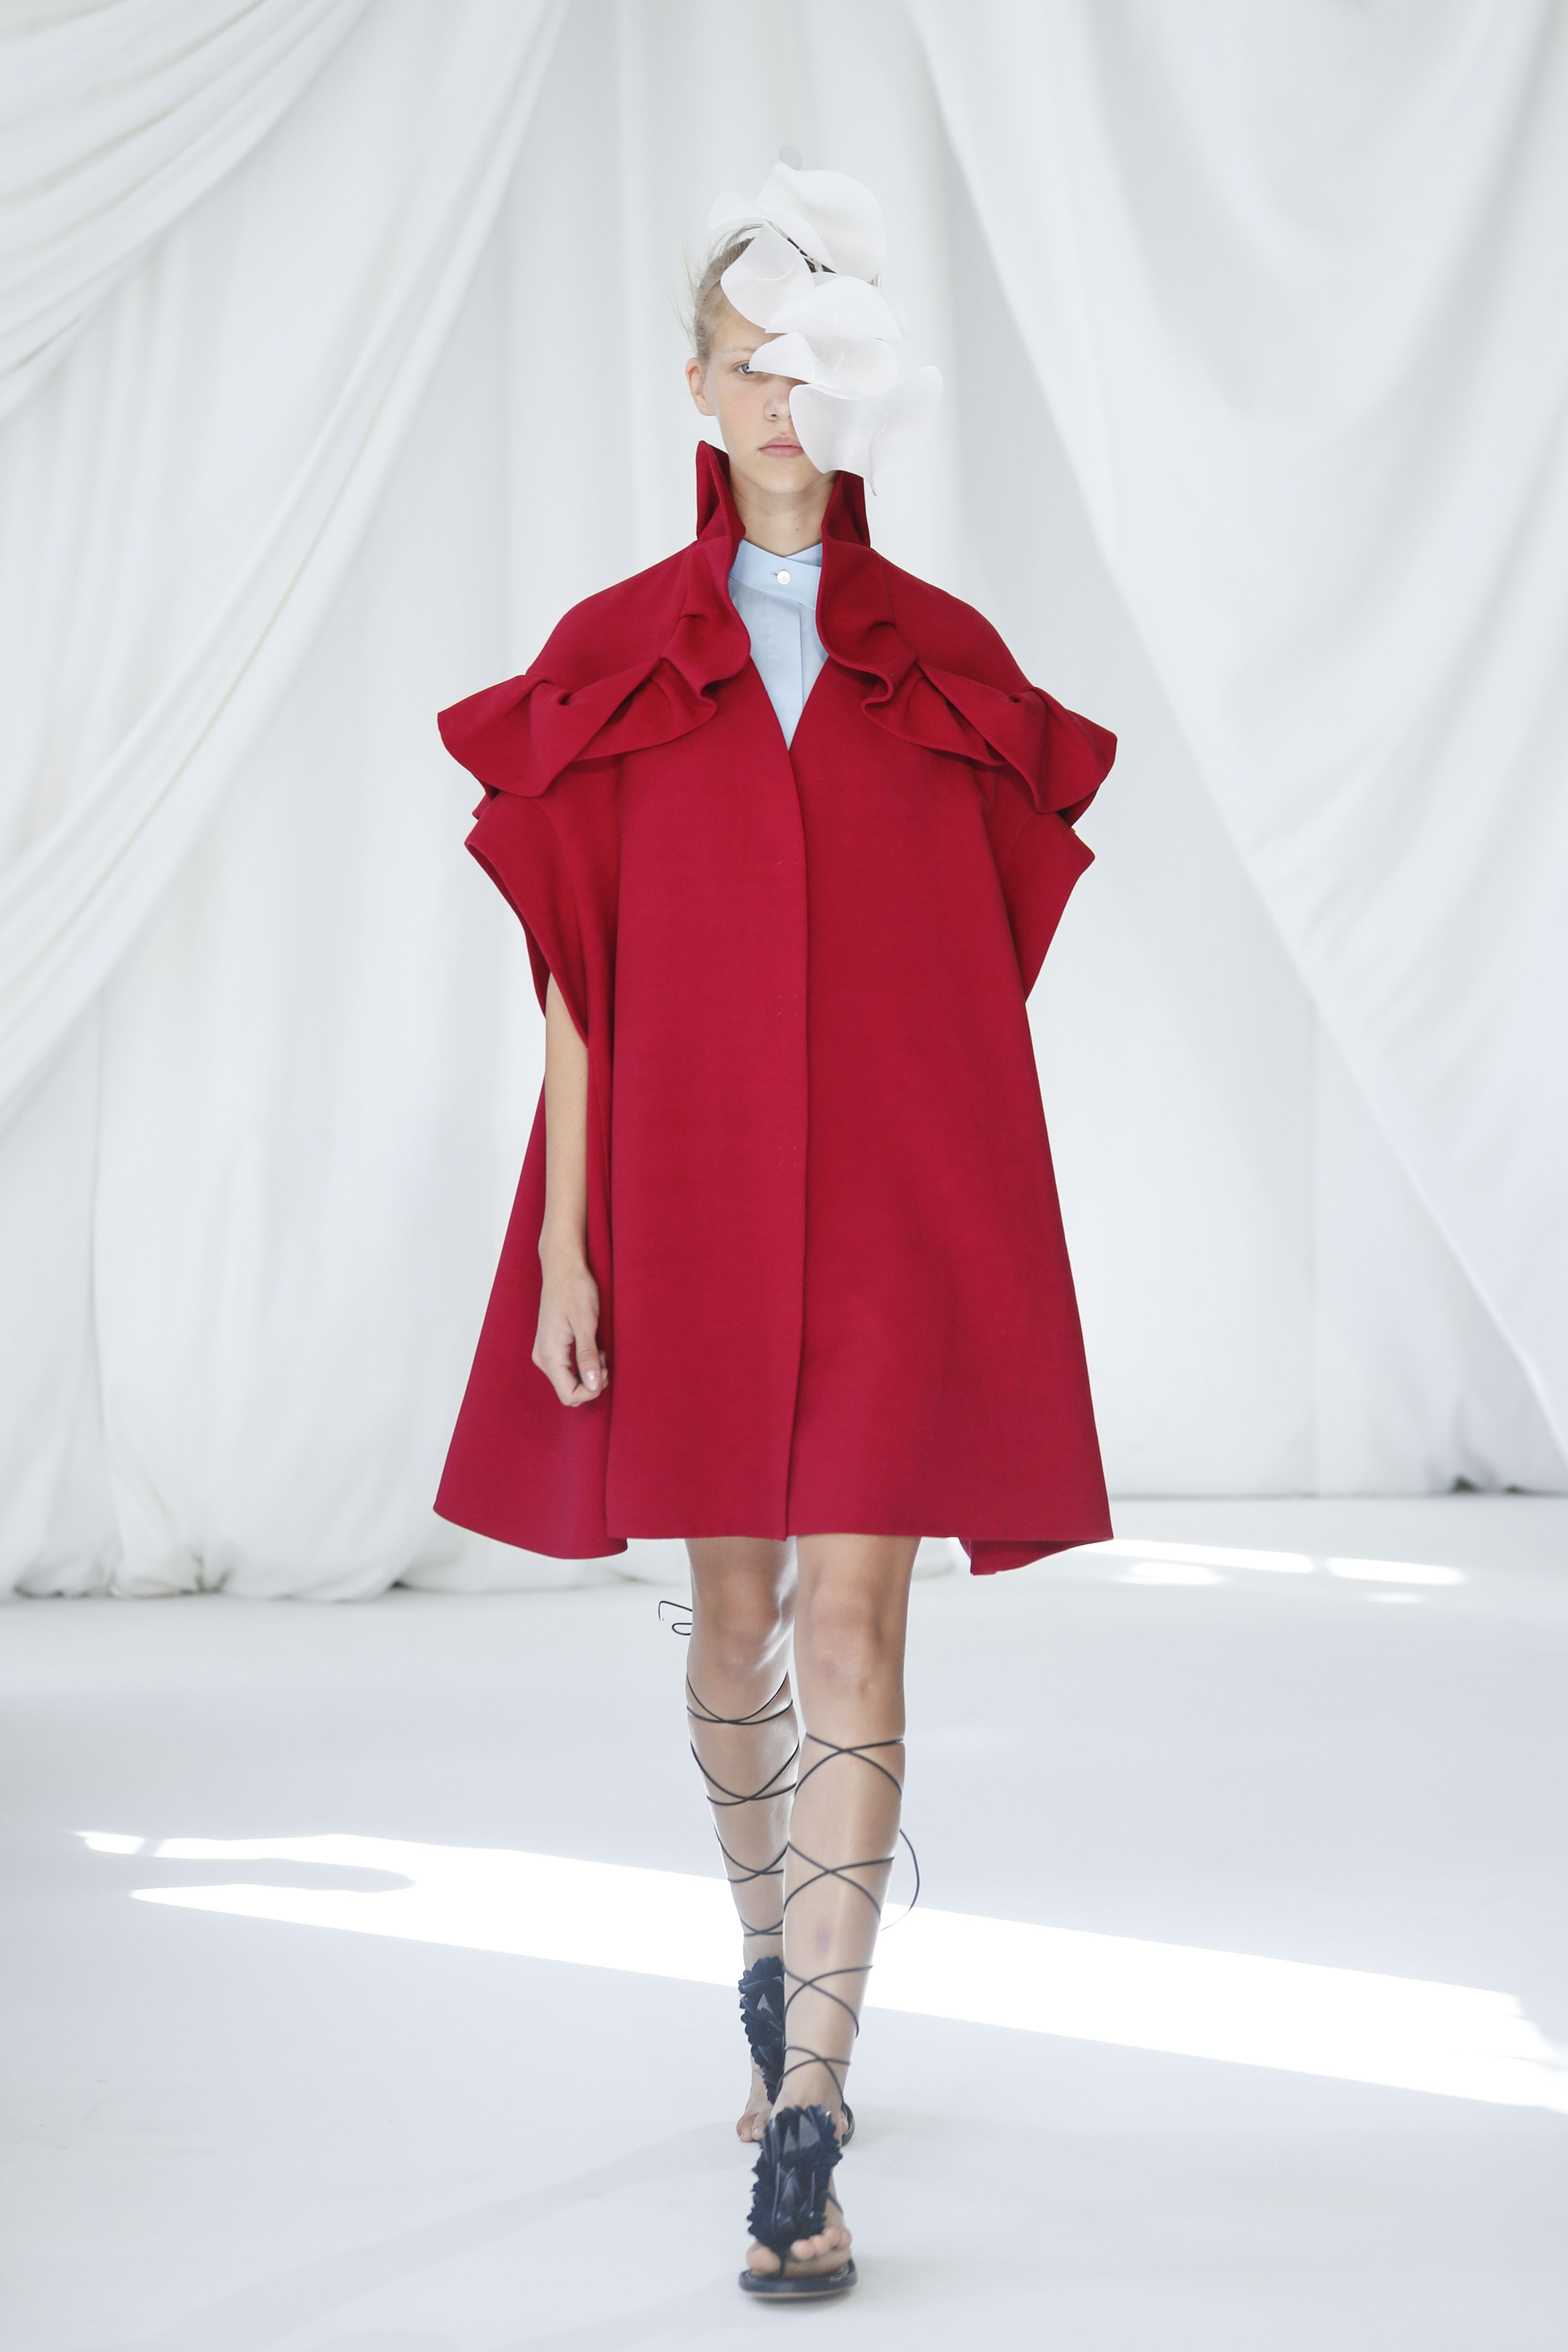 Discussion on this topic: Delpozo SpringSummer 2019 Collection – New York , delpozo-springsummer-2019-collection-new-york/